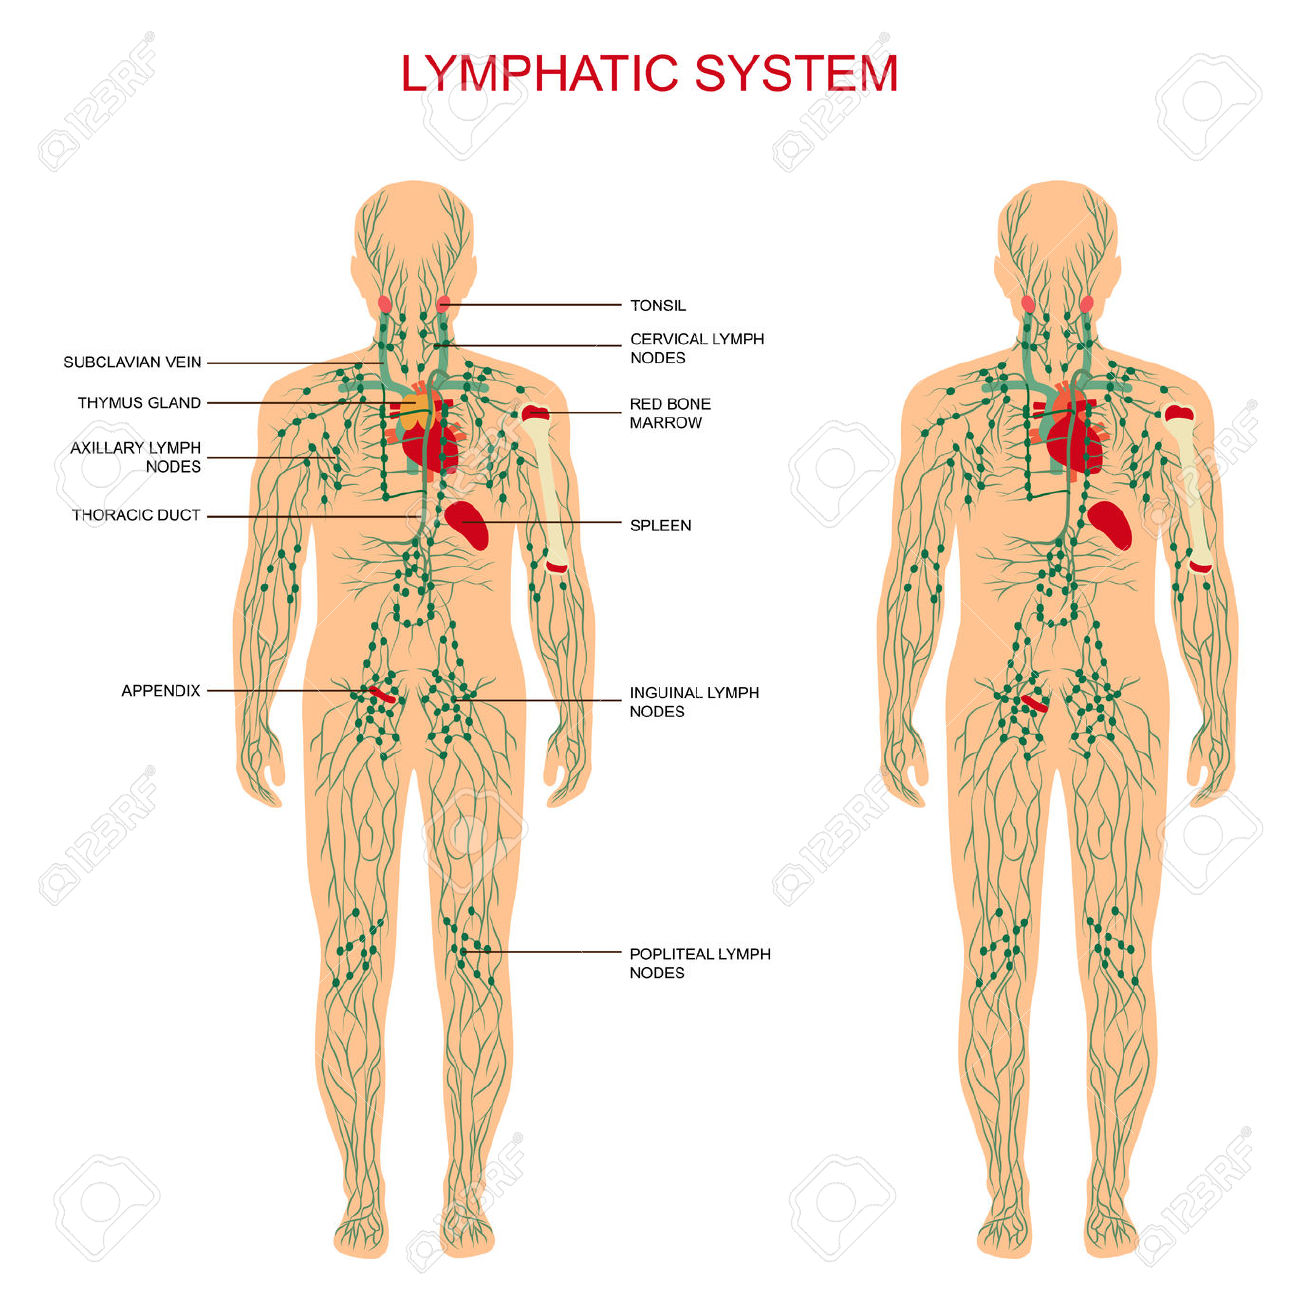 where are my lymph nodes diagram pioneer deh 1300mp wiring 2 the lymphatic system is most crucial in your body